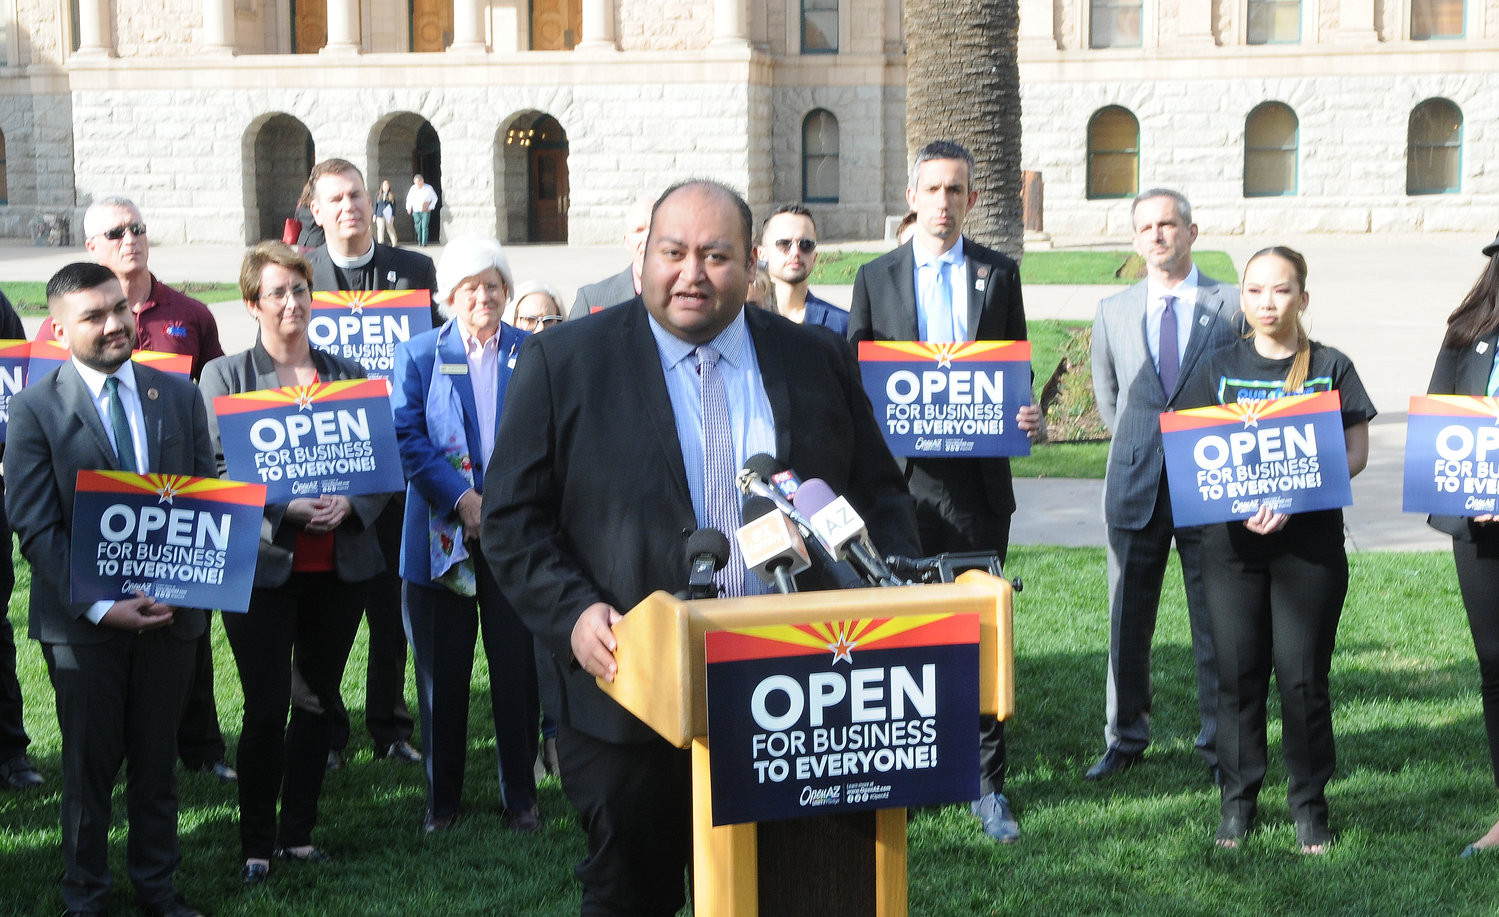 Rep. Daniel Hernandez at a press conference earlier in 2020 pushing, unsuccessfully, to extend Arizona's anti-discrimination laws to also protect those in the LGBTQ community.